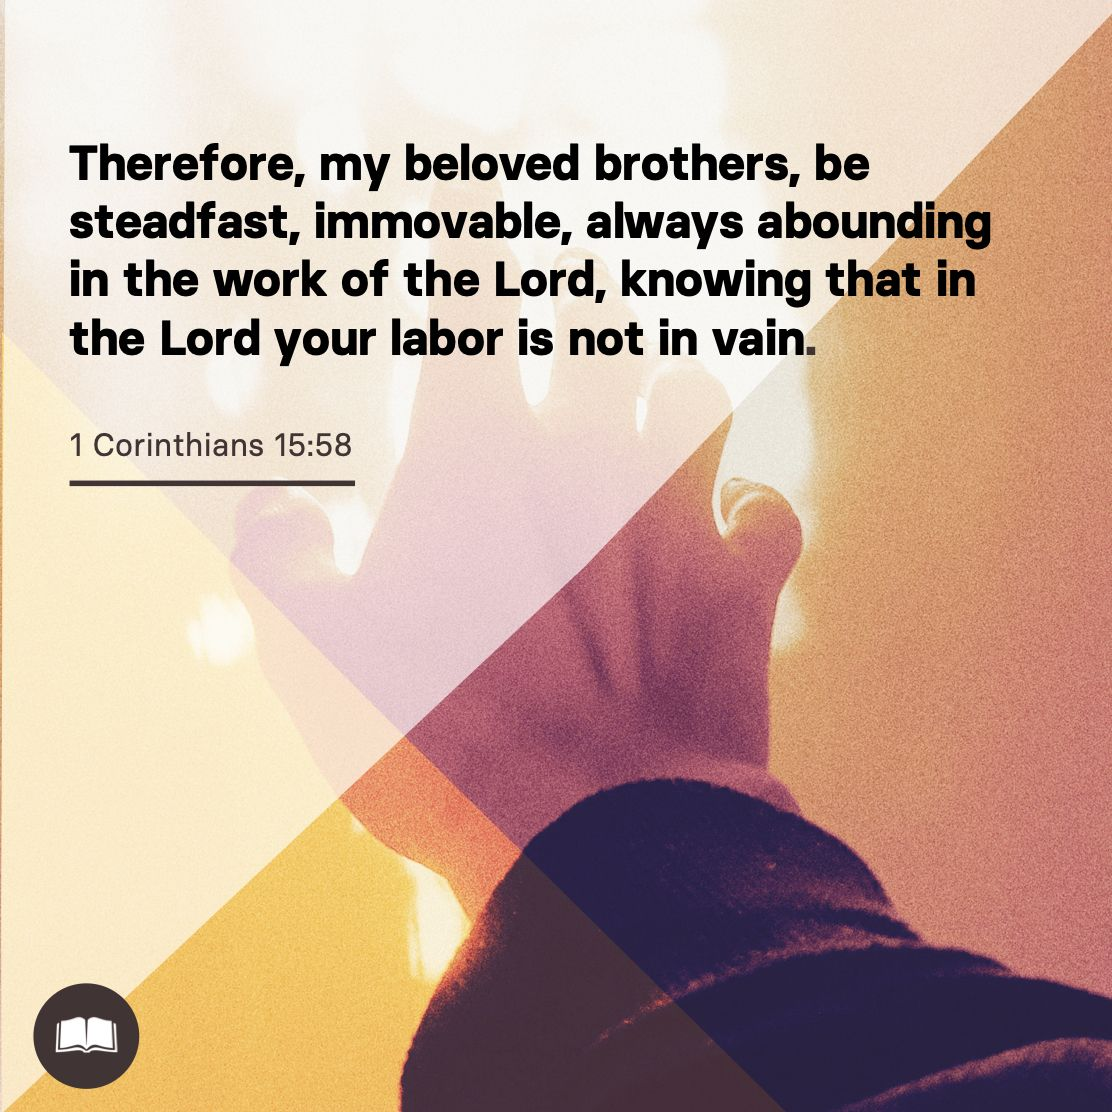 As this week comes to an end, here is some encouragement from 1 Corinthians 15. Have a great Friday and finish the week strong. #FinishStrong